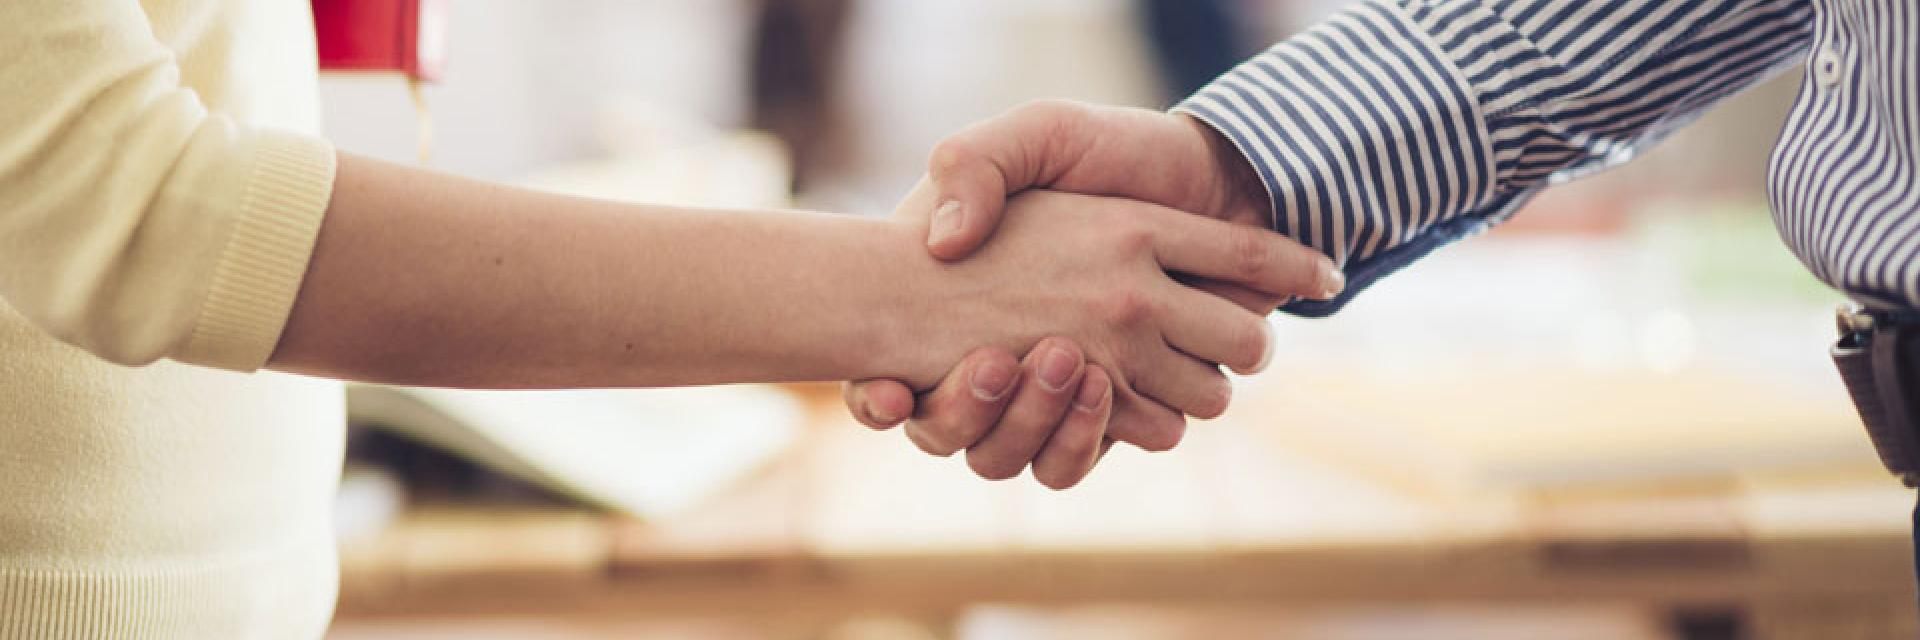 Image of a handshake.